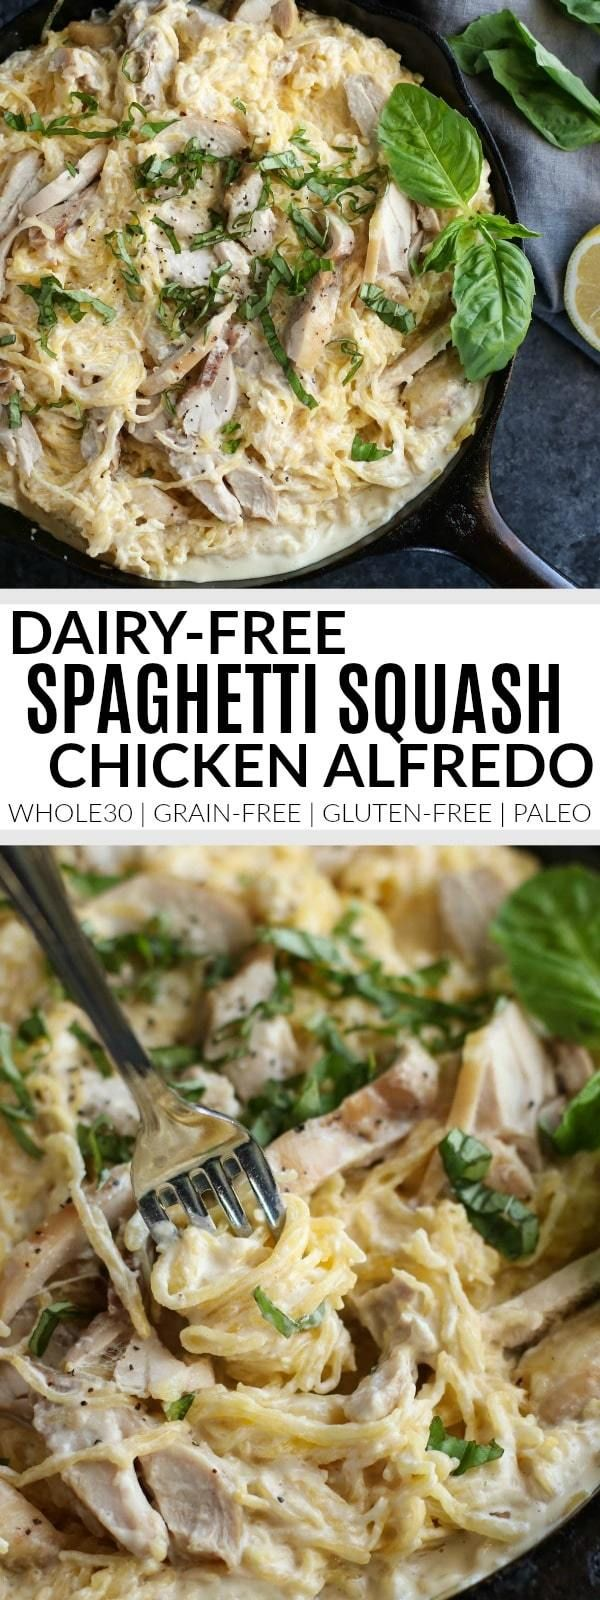 Looking for a healthy comfort food dish for your next gathering or meal prep session? This Dairy-free Spaghetti Squash Chicken Alfredo is just the ticket! Whole30 | Paleo | Dairy-free Serves: 6